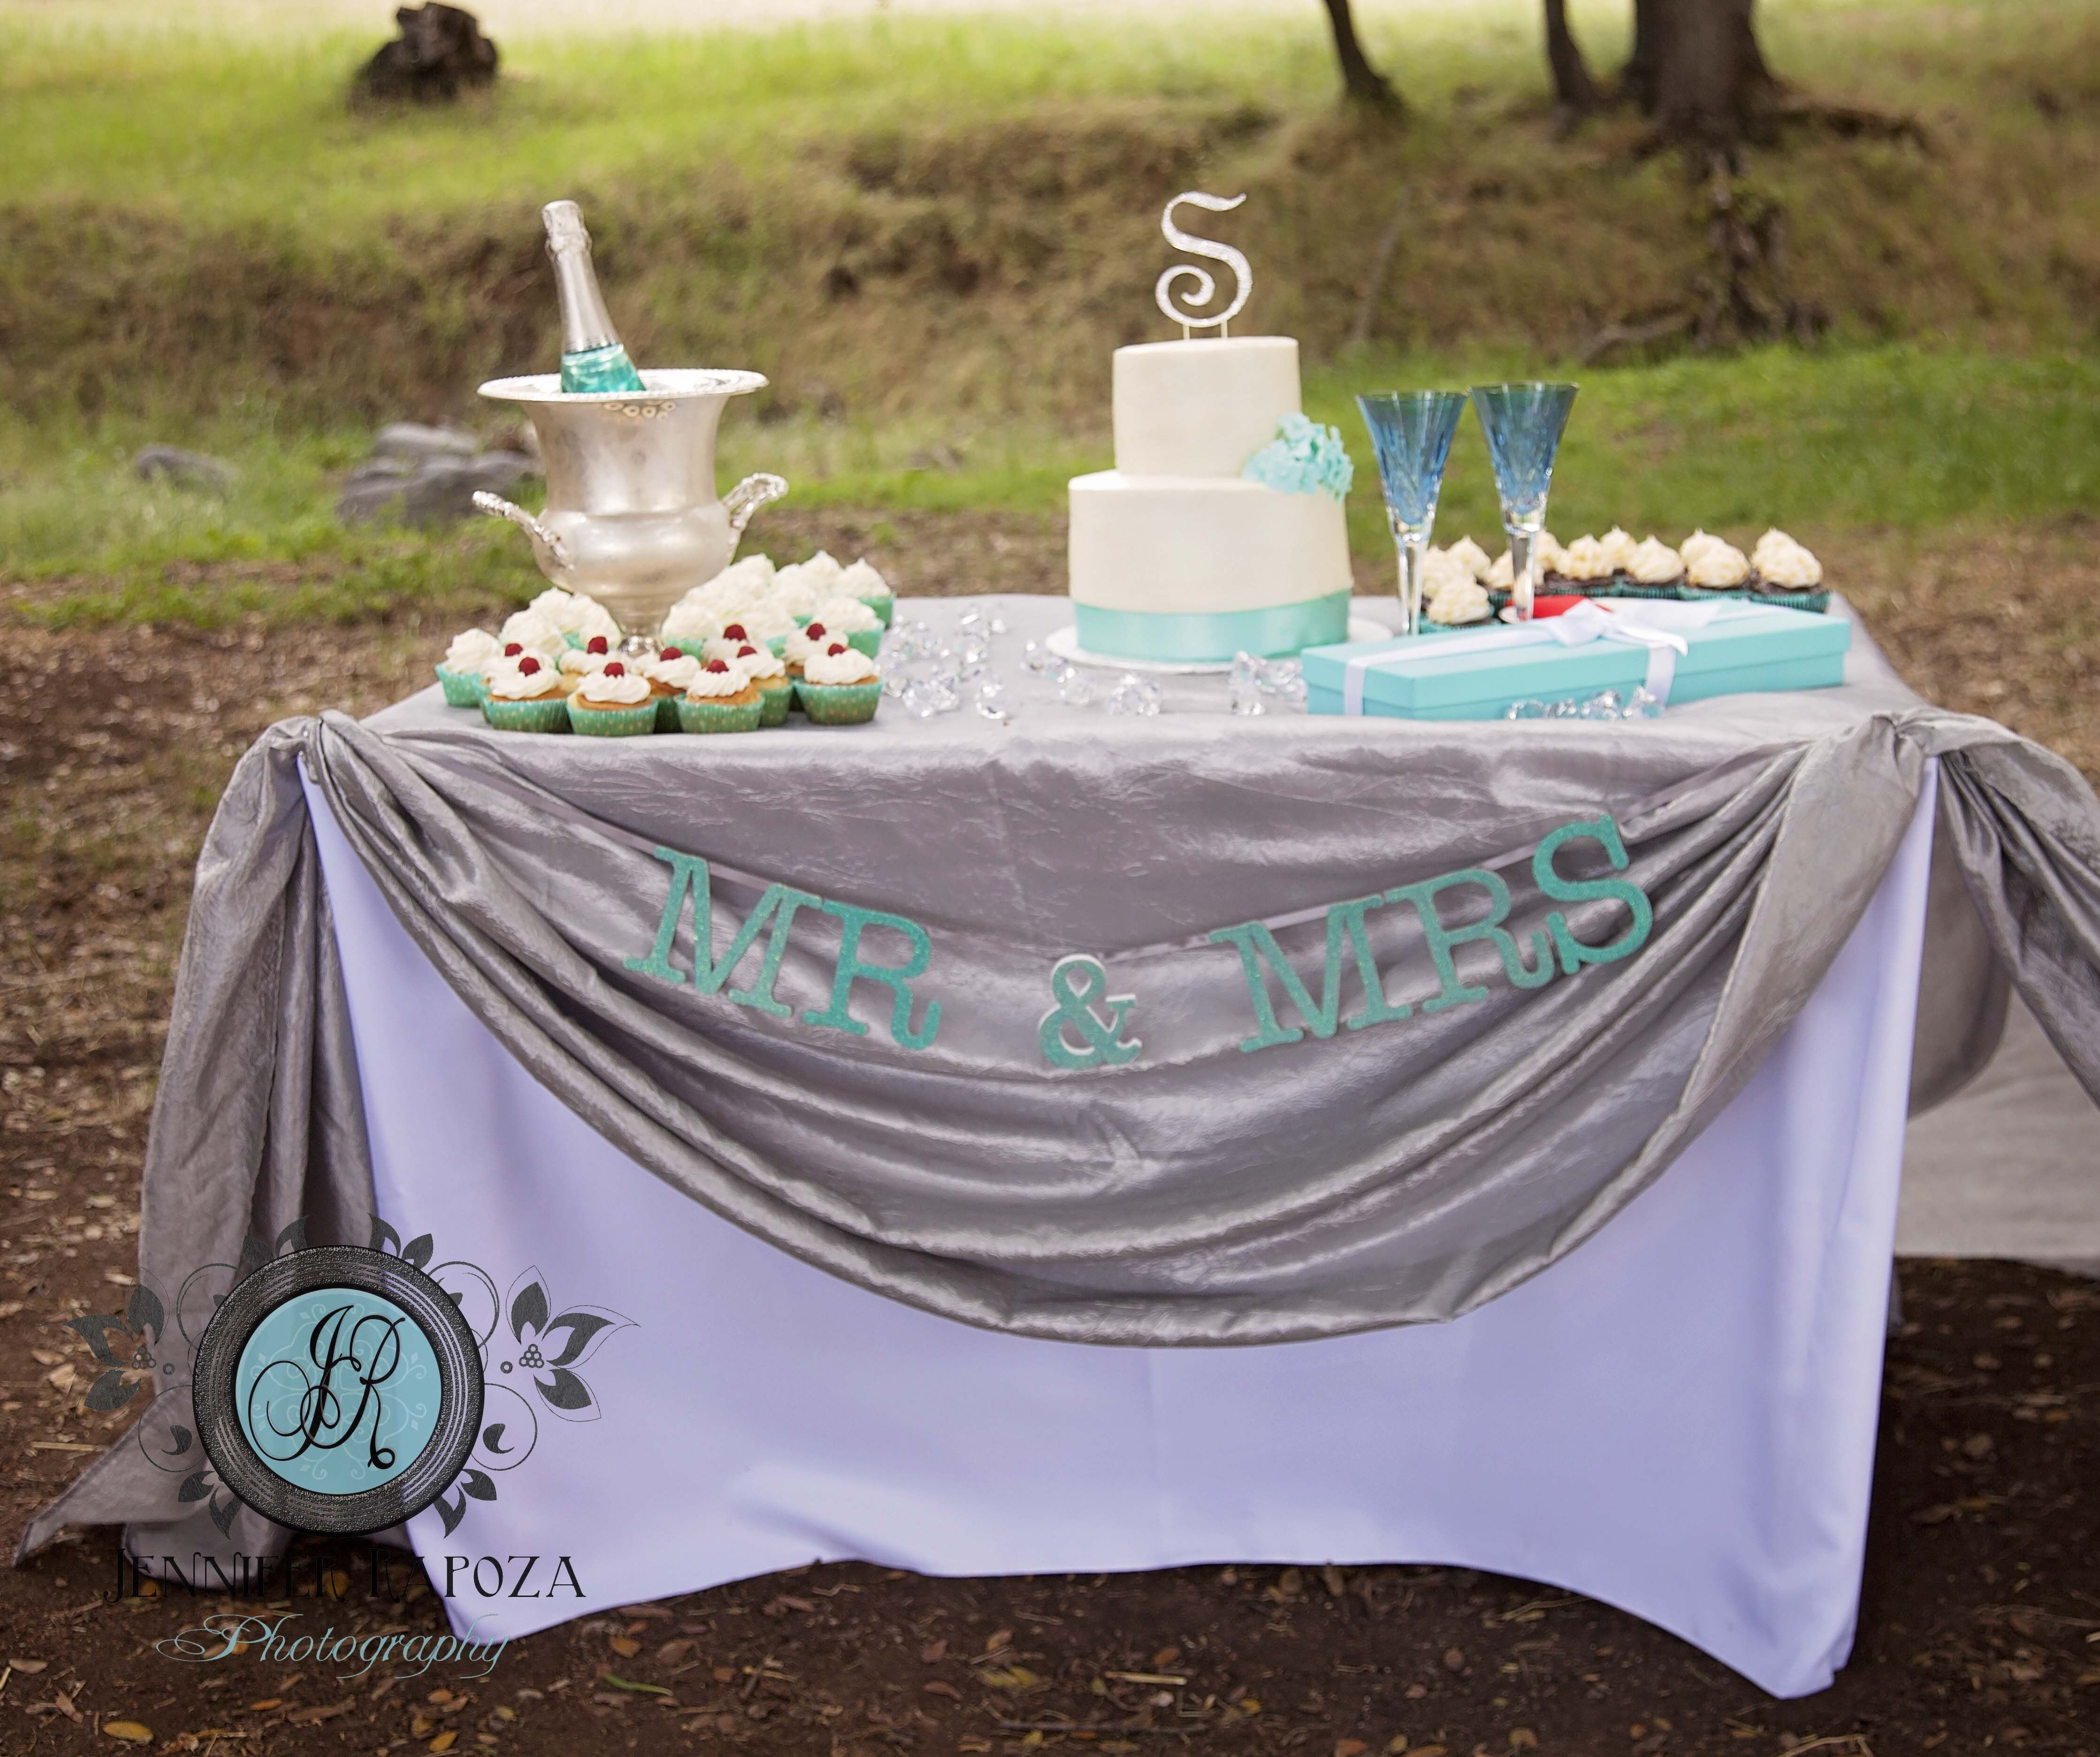 Red And Tiffany Blue Wedding Ideas: Tiffany Blue And Red Wedding. Save The Date Events, Sonora